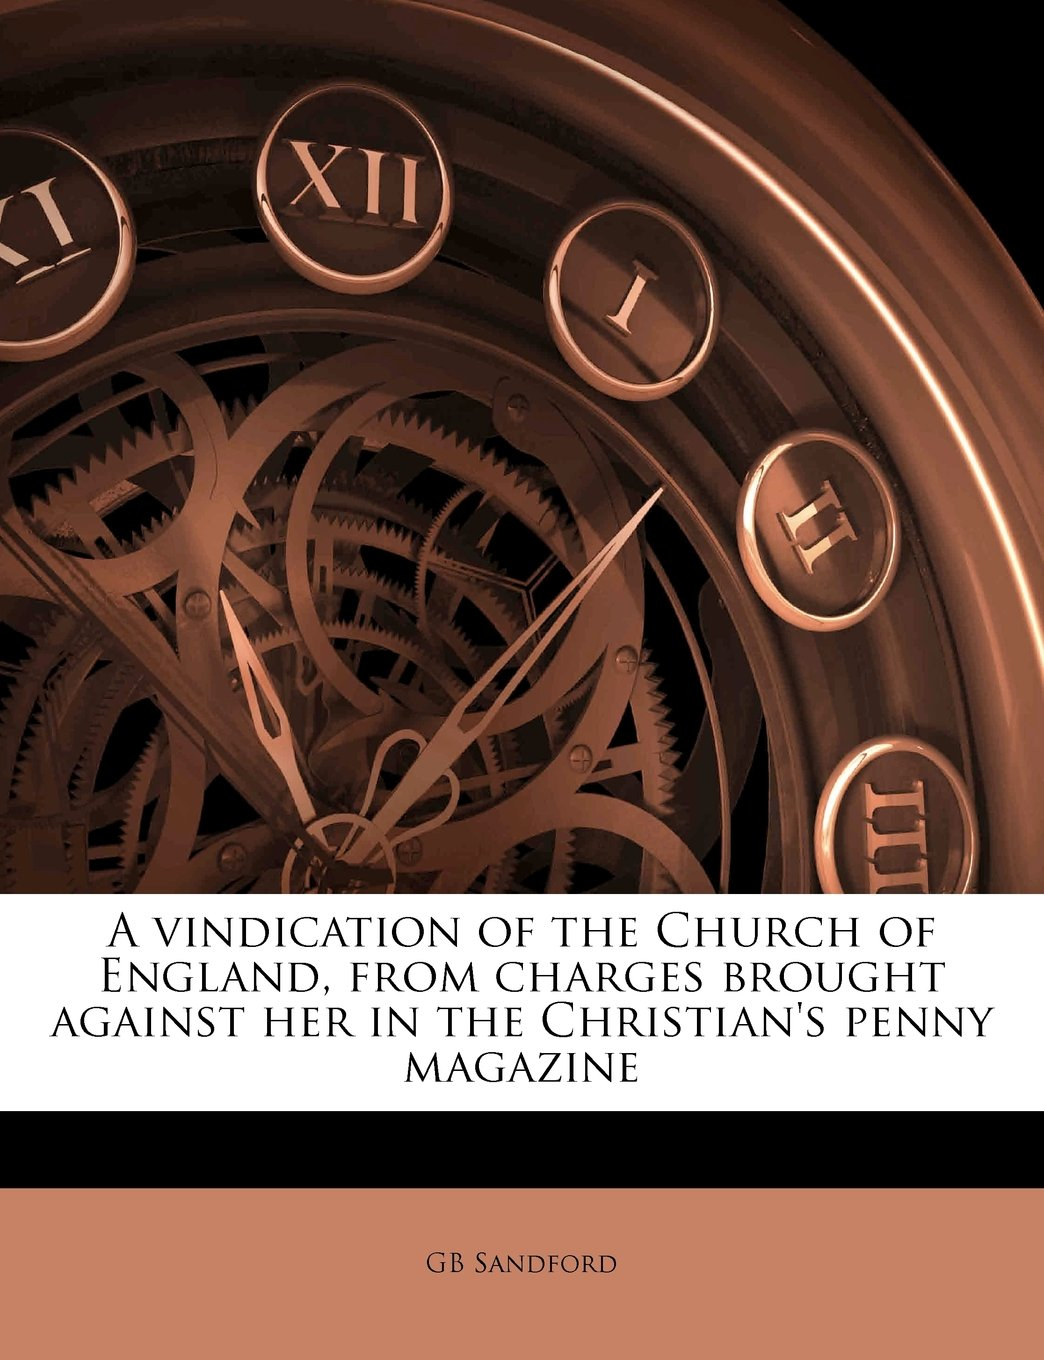 Download A vindication of the Church of England, from charges brought against her in the Christian's penny magazine PDF